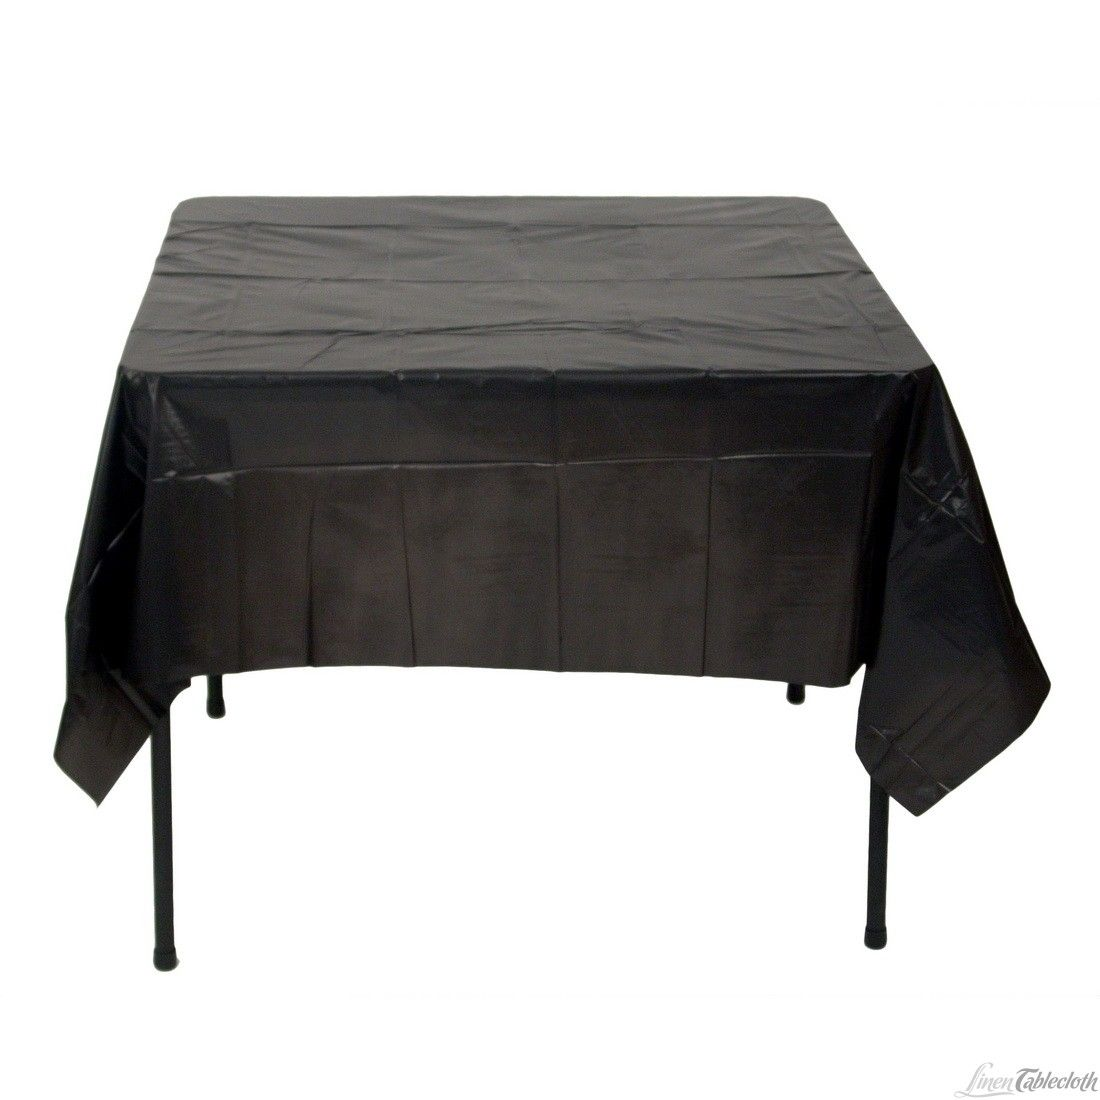 Amazing Square Disposable Plastic Tablecloth Black For Only $1.35 At  Linentablecloth.com Perfect